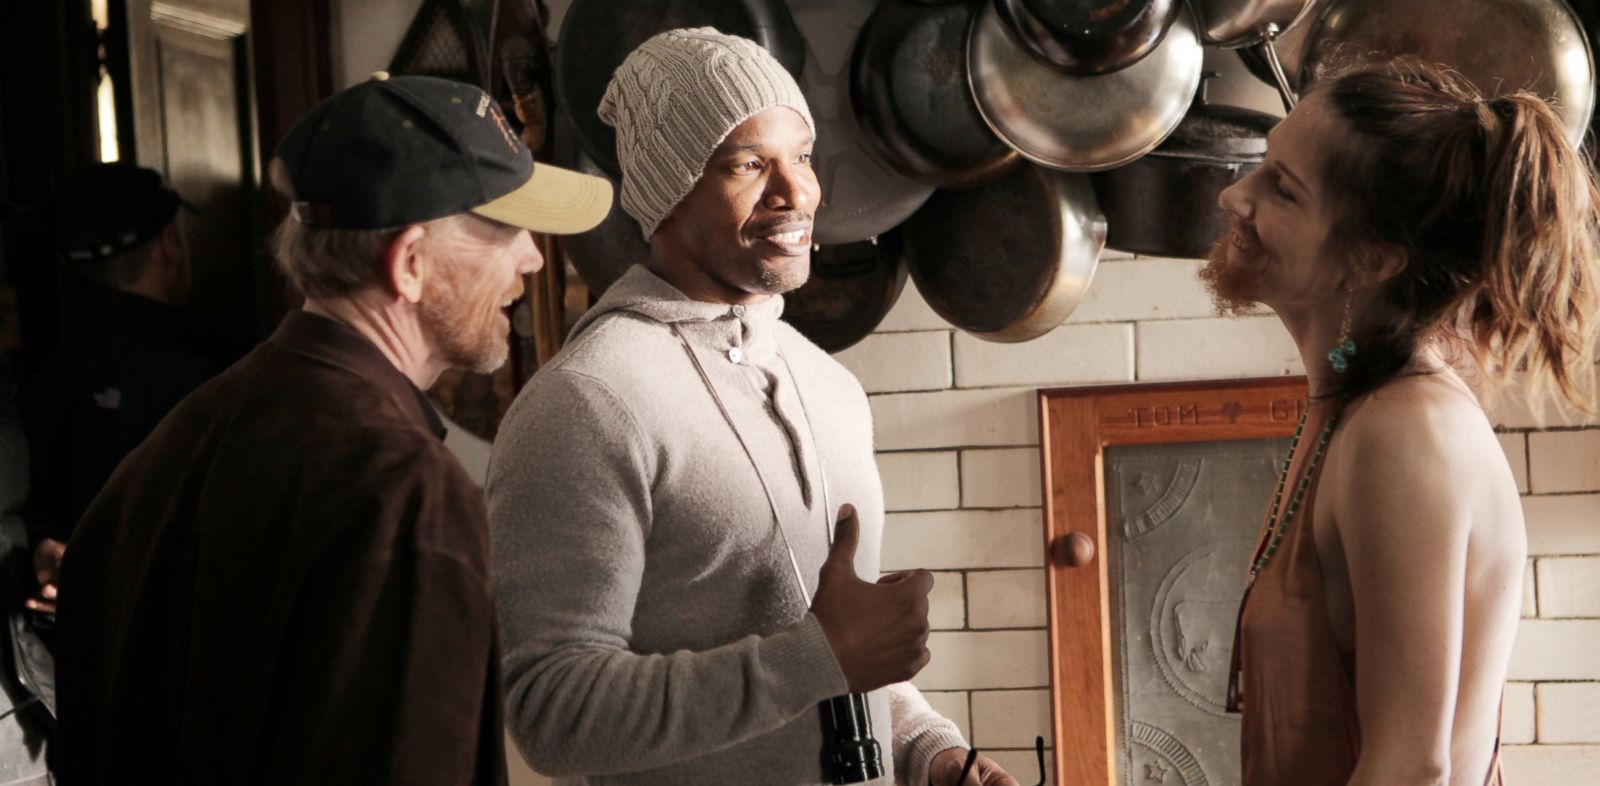 """PHOTO: Jamie Foxx recently stepped behind the camera to direct """"…And She Was My Eve"""" as part of the Canon Project Imaginat10n Film Festival inspired by consumer submitted photographs."""